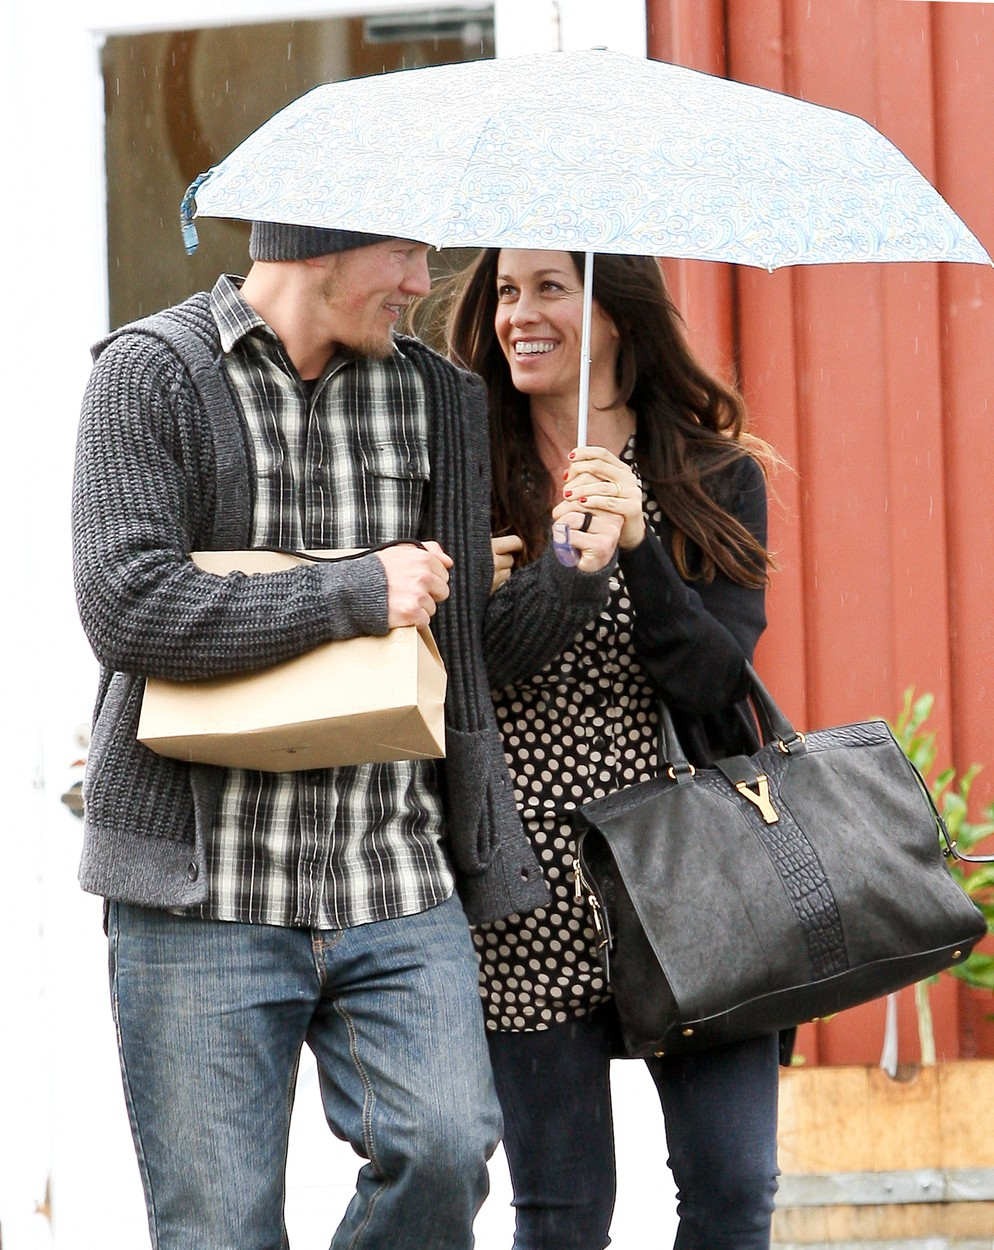 "#8275221 Songstress Alanis Morissette cuddled up to her husband Mario ""MC Souleye"" Treadway under an umbrella in an attempt to stay dry after lunch at the Brentwood Country Mart in Los Angeles, California on December 12, 2011., Image: 109126079, License: Rights-managed, Restrictions: , Model Release: no, Credit line: Fame Pictures / Backgrid USA / Profimedia"